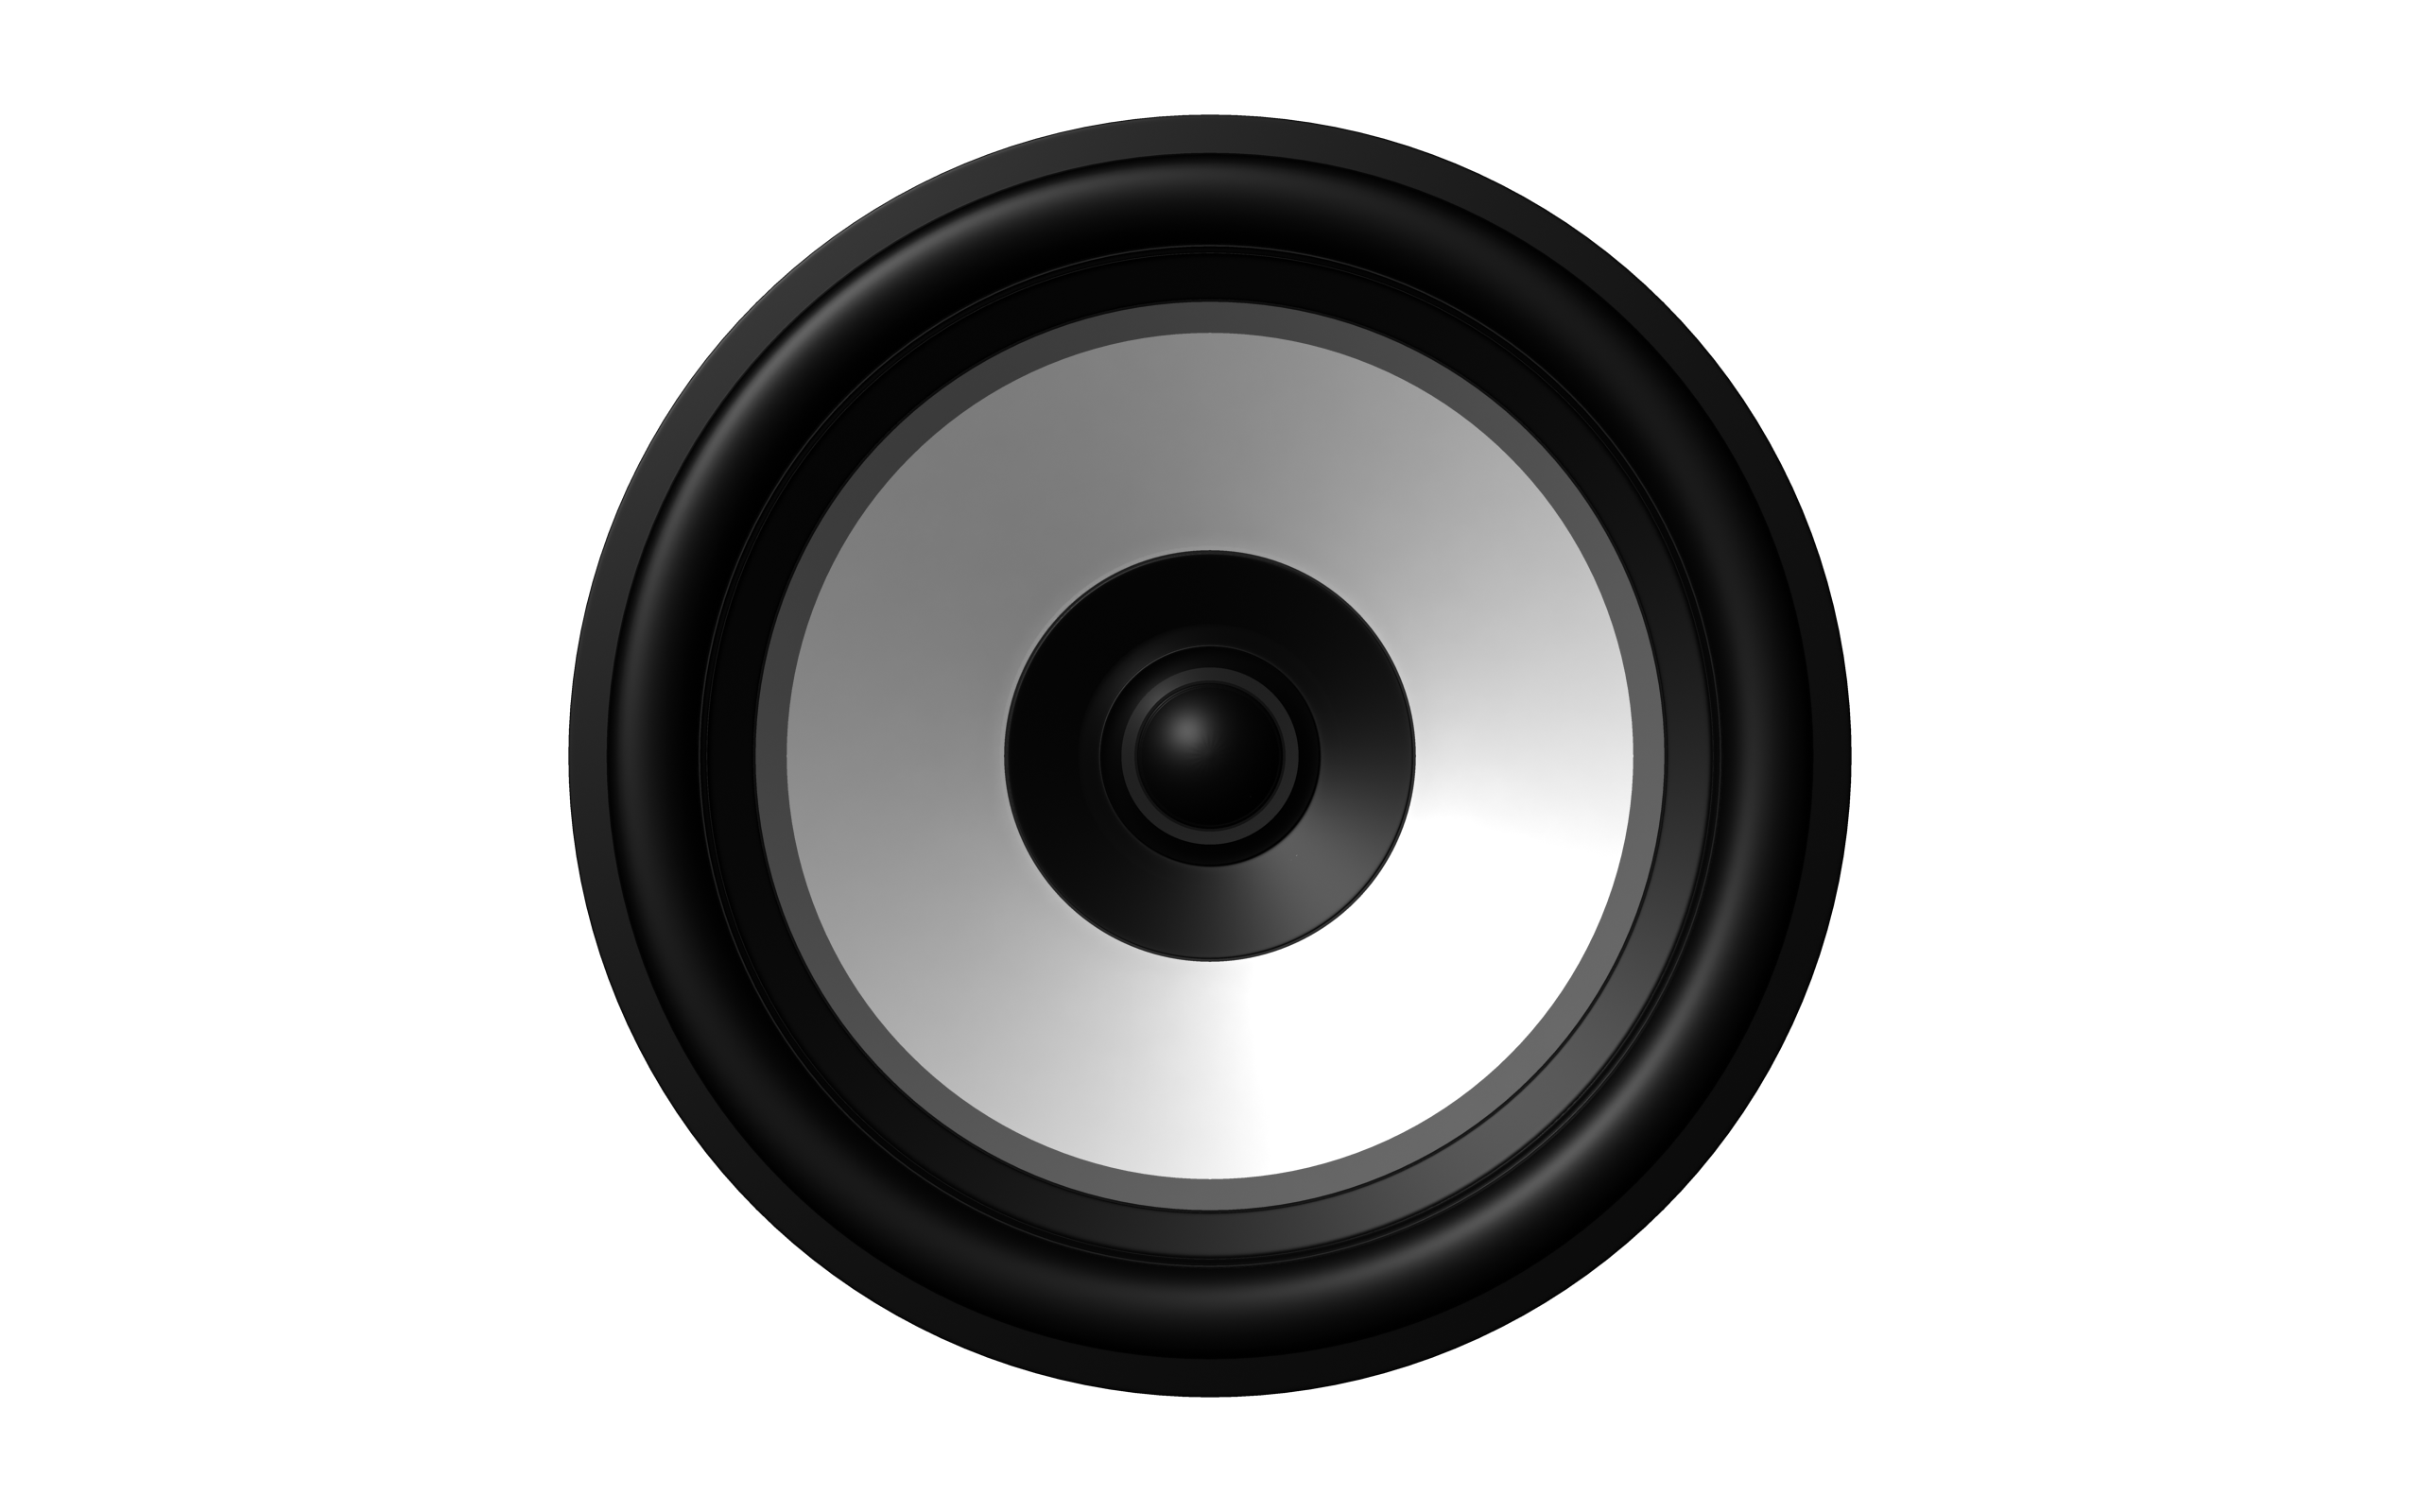 Pa system clipart picture library download Dj clipart pa system, Dj pa system Transparent FREE for ... picture library download